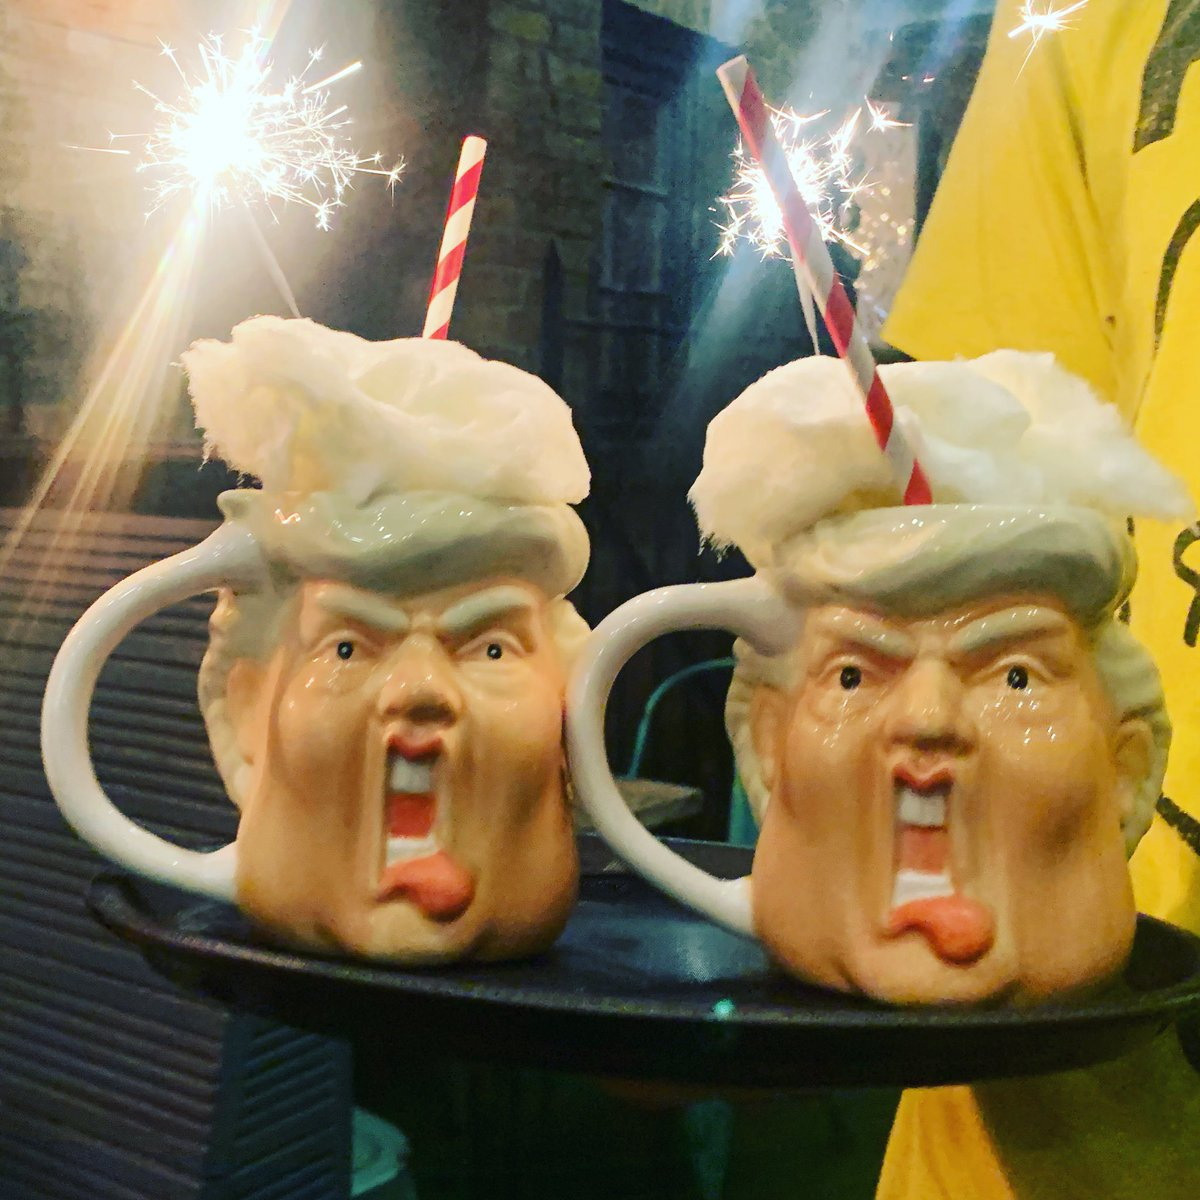 Celebrate the USA elections with an American Psycho: a celebration of the good, the bad and the ugly from the USA! With @TitosVodka, apple pie moonshine, peanut butter and even banana candyfloss! #trump #Halloween2020 https://t.co/oxMhkzXRqp